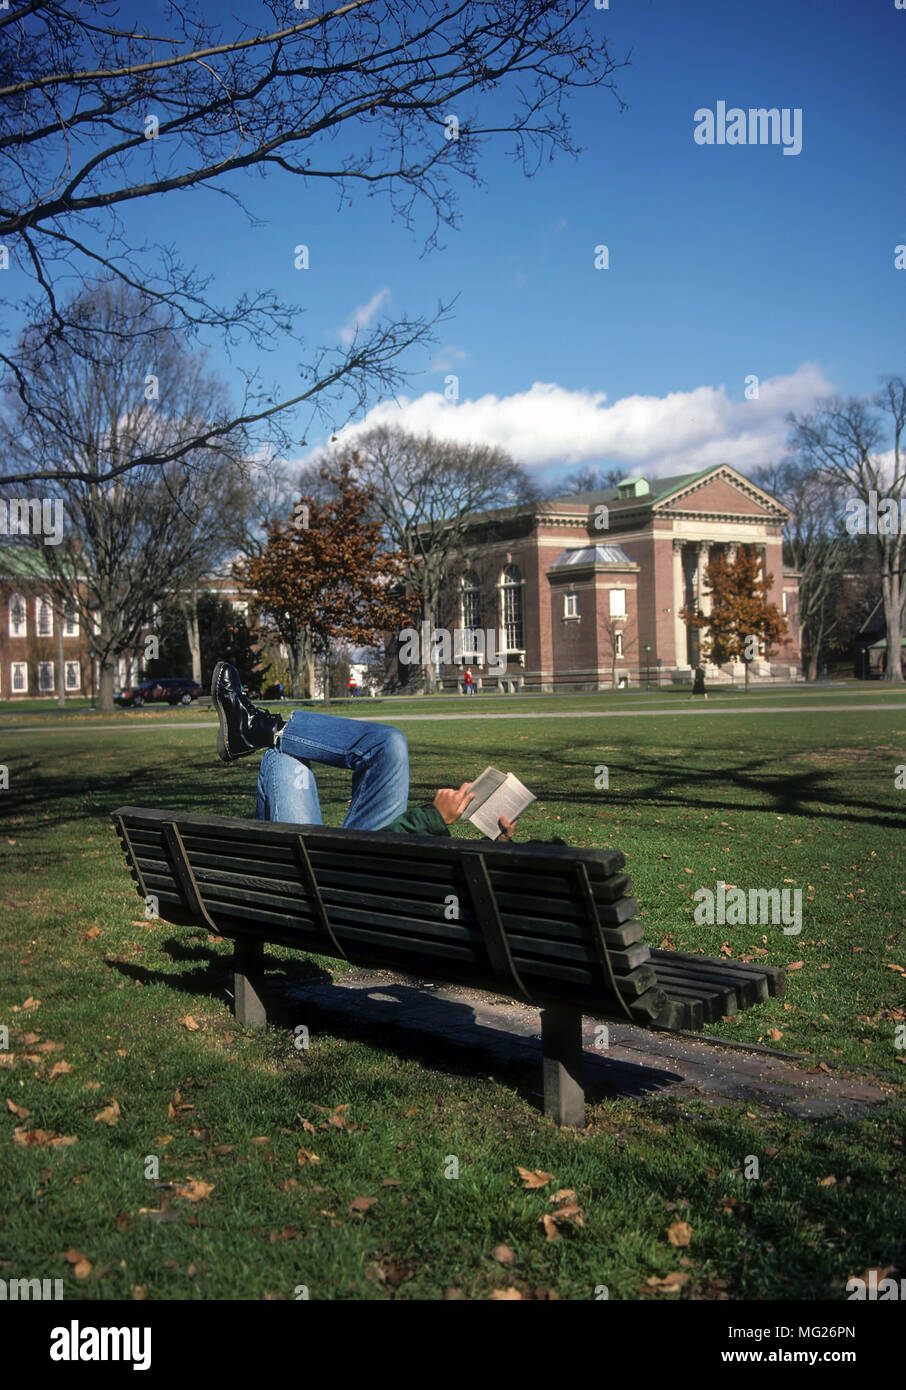 "A student at Dartmouth College lays on a park bench located on ""The Green"" reading a book at Hanover, New Hampshire, United States, North America. Stock Photo"